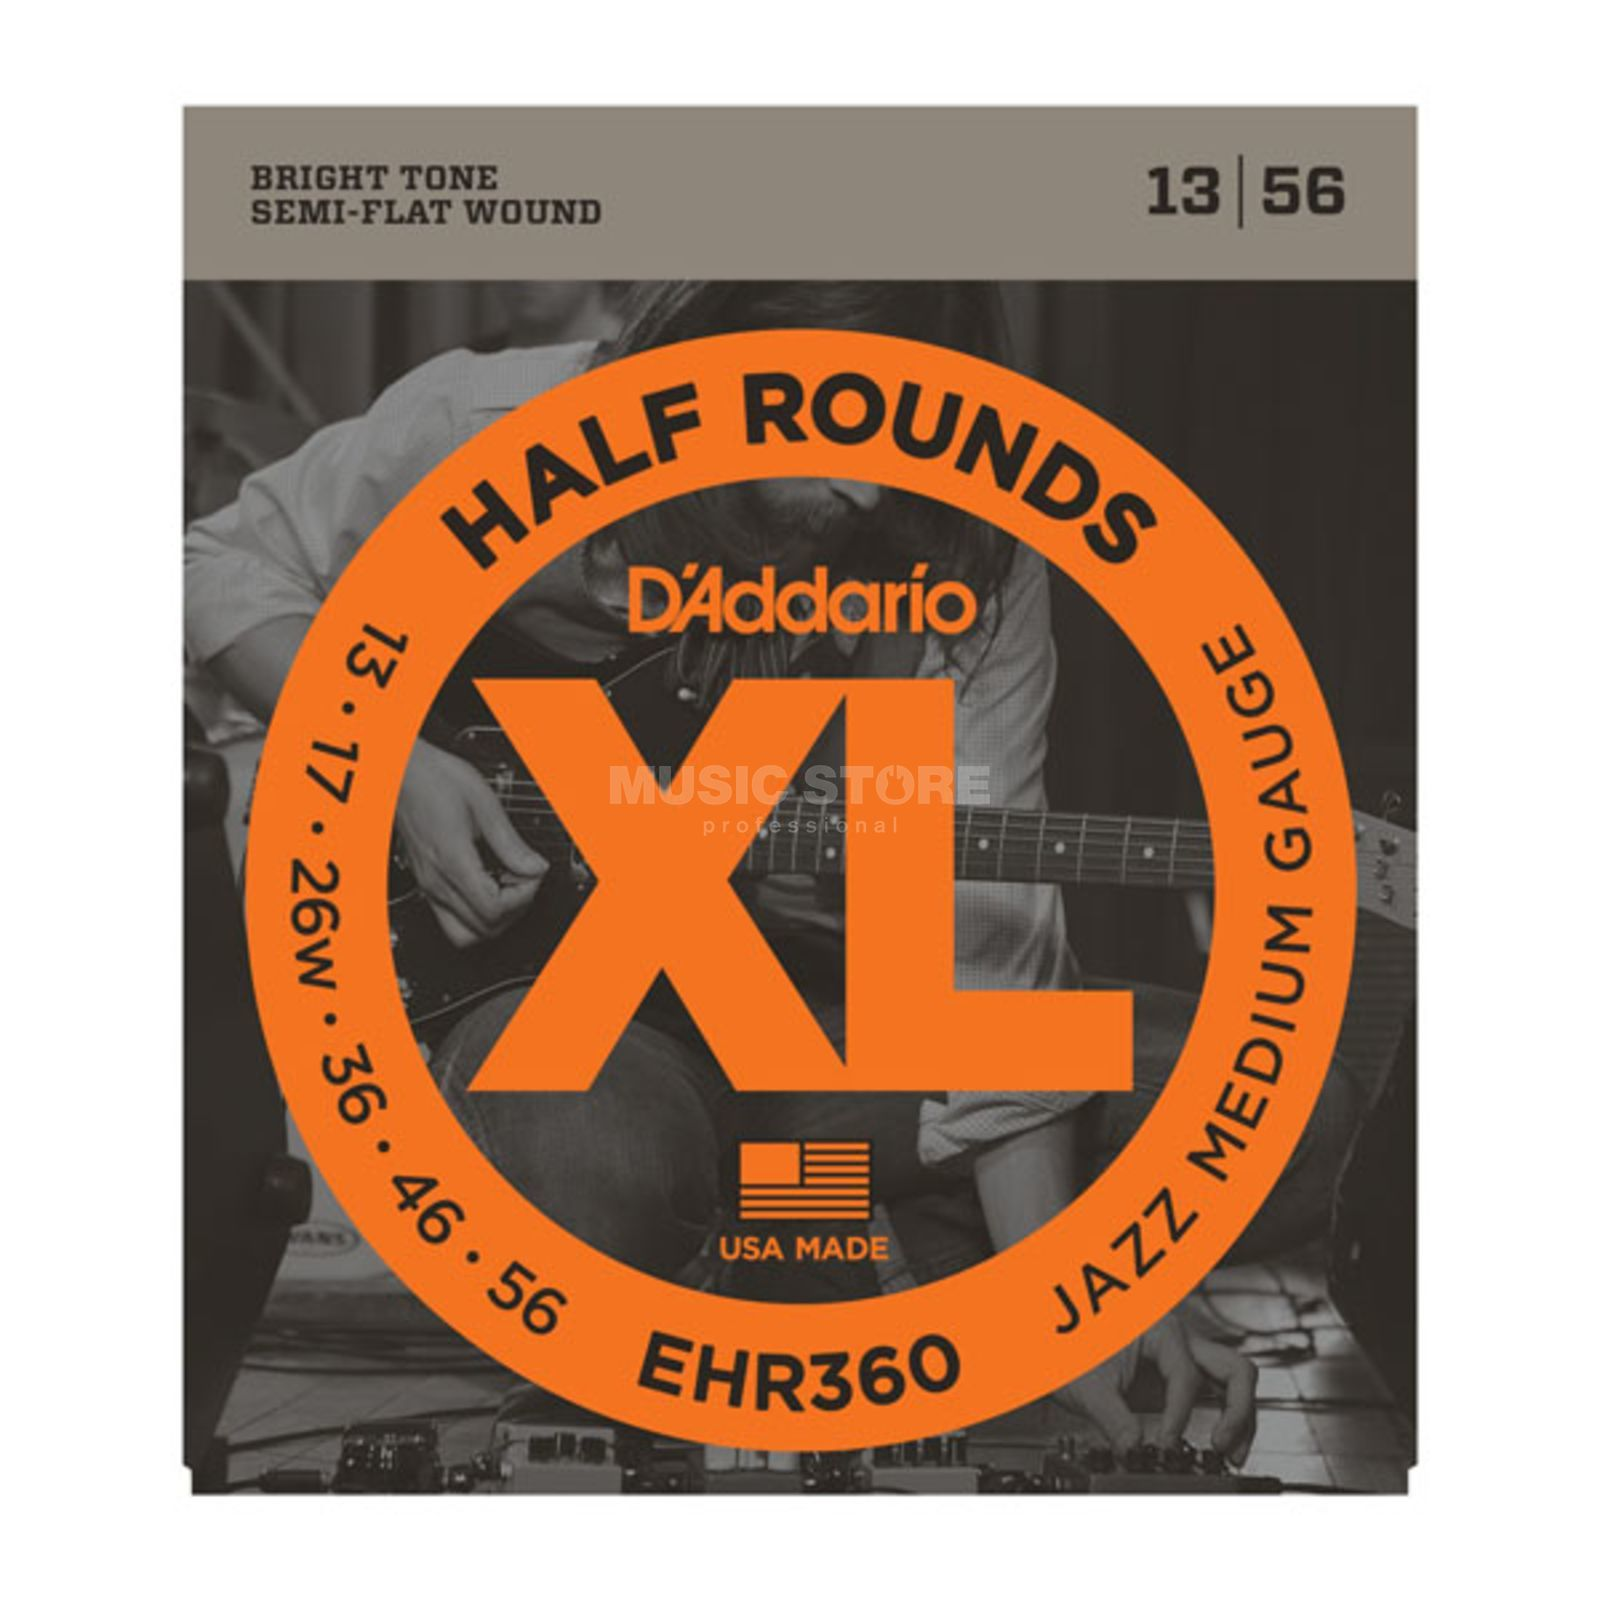 D'Addario E-Guitar Strings EHR360 13-56 Half Rounds Stainless Steel Produktbillede